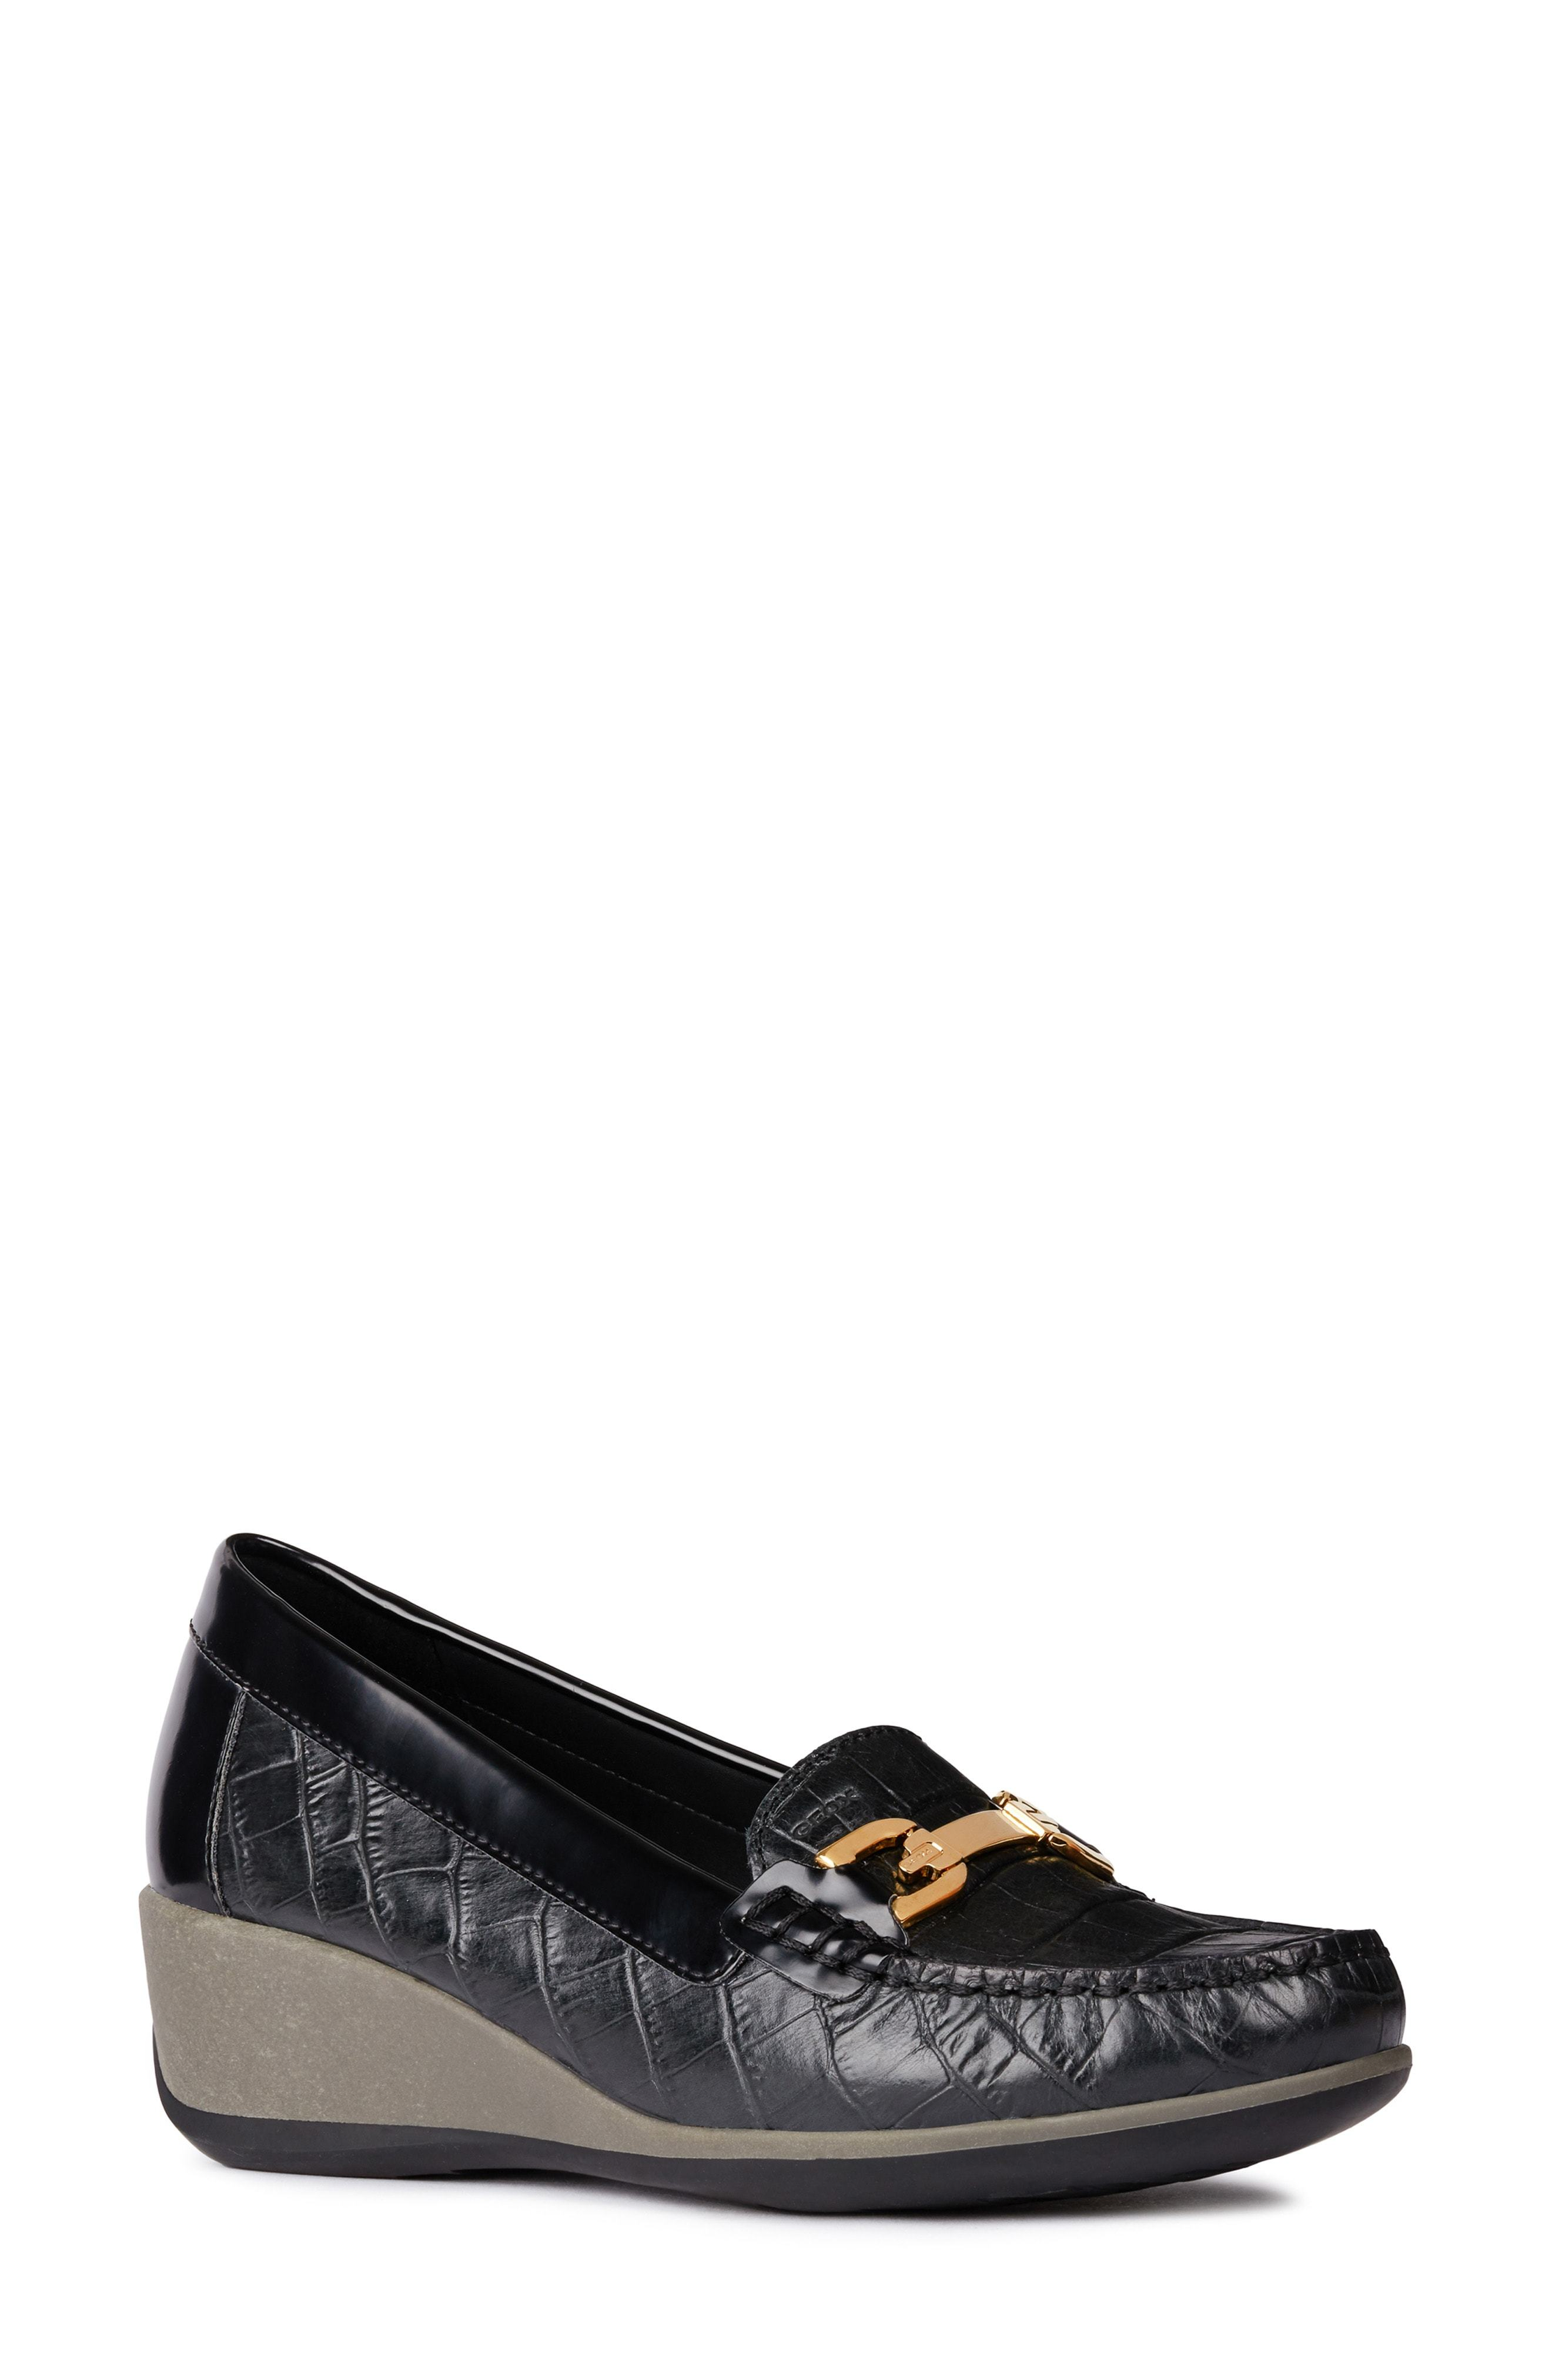 Geox Arethea Loafer Wedge